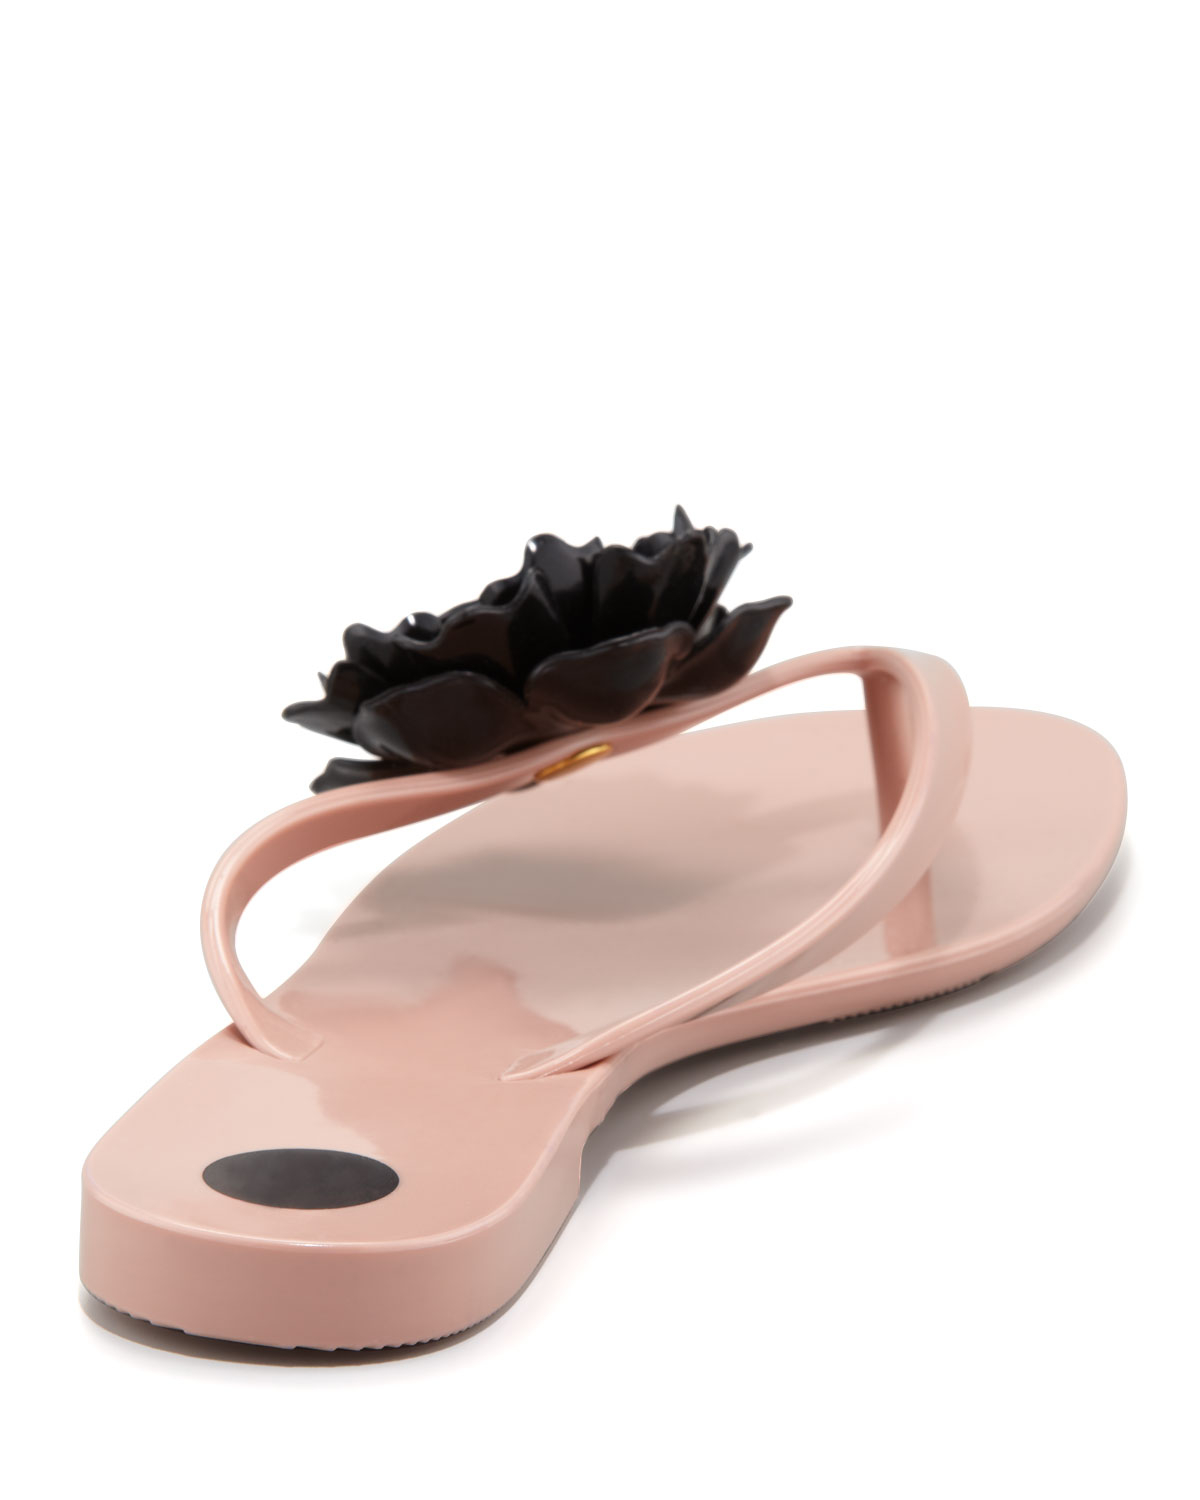 bc9b6cbc0 Lyst - Melissa Harmonic Floral Thong Sandal in Pink